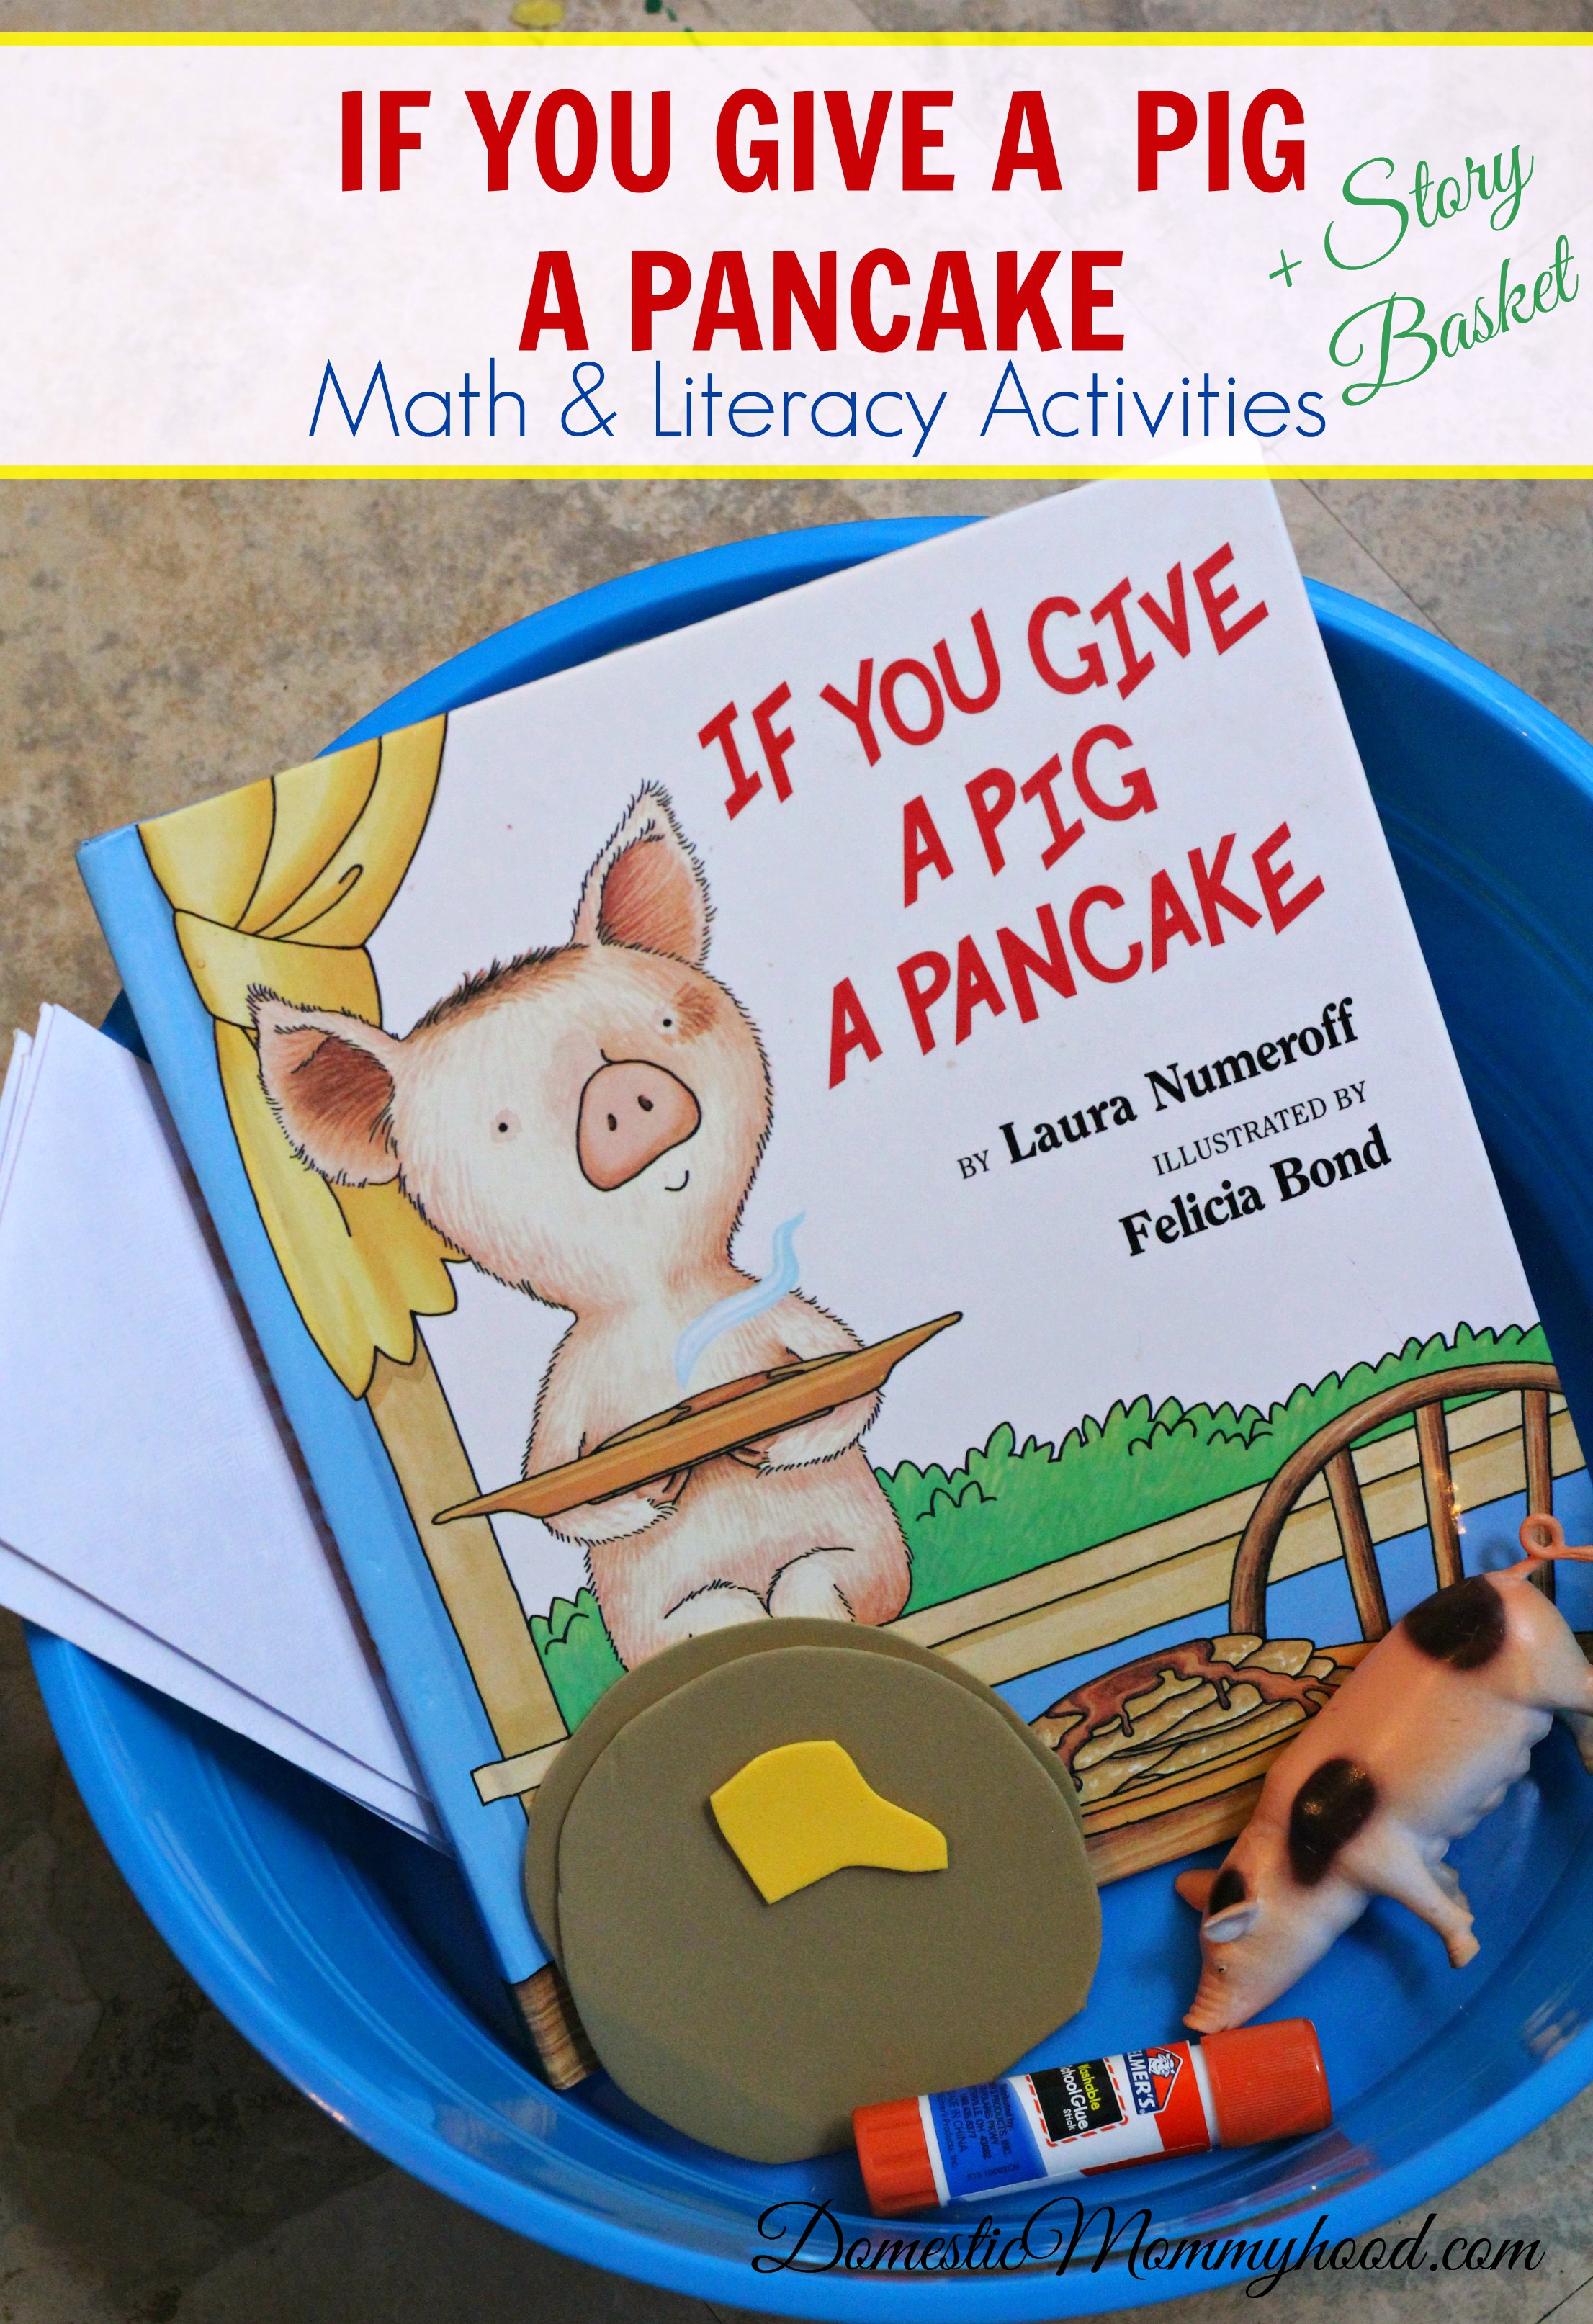 if-you-give-a-pig-a-pancake-math-and-literacy-pre-k-kids-activity-story-basket